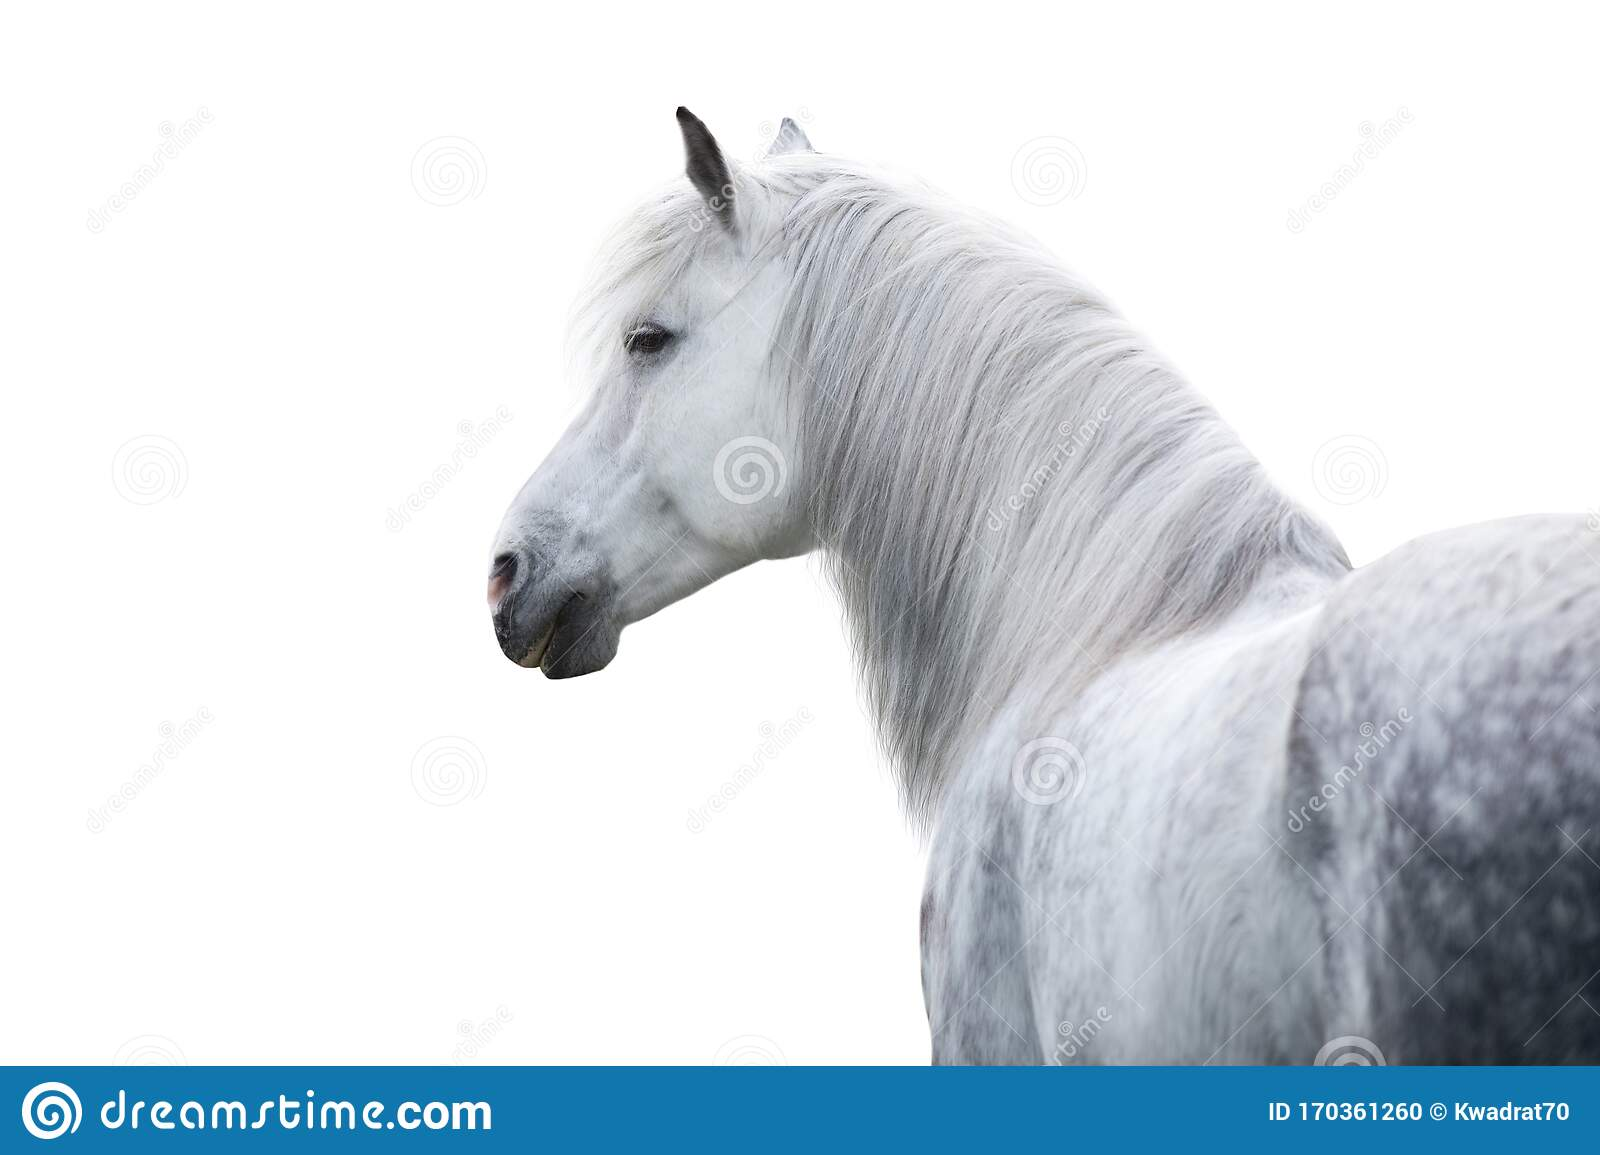 44 633 White Horse Portrait Photos Free Royalty Free Stock Photos From Dreamstime